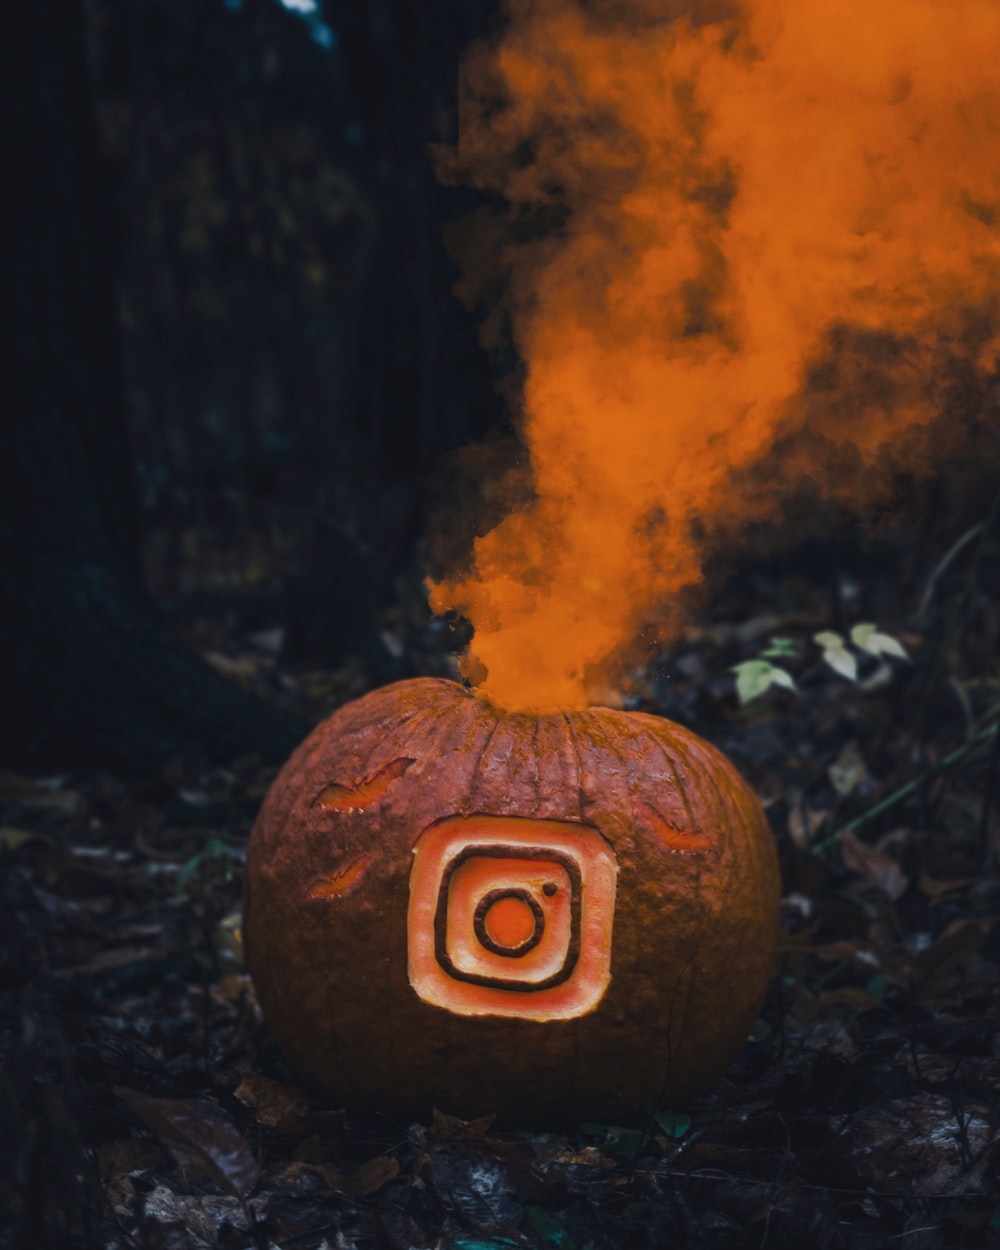 Instagram Hashtag and engagement